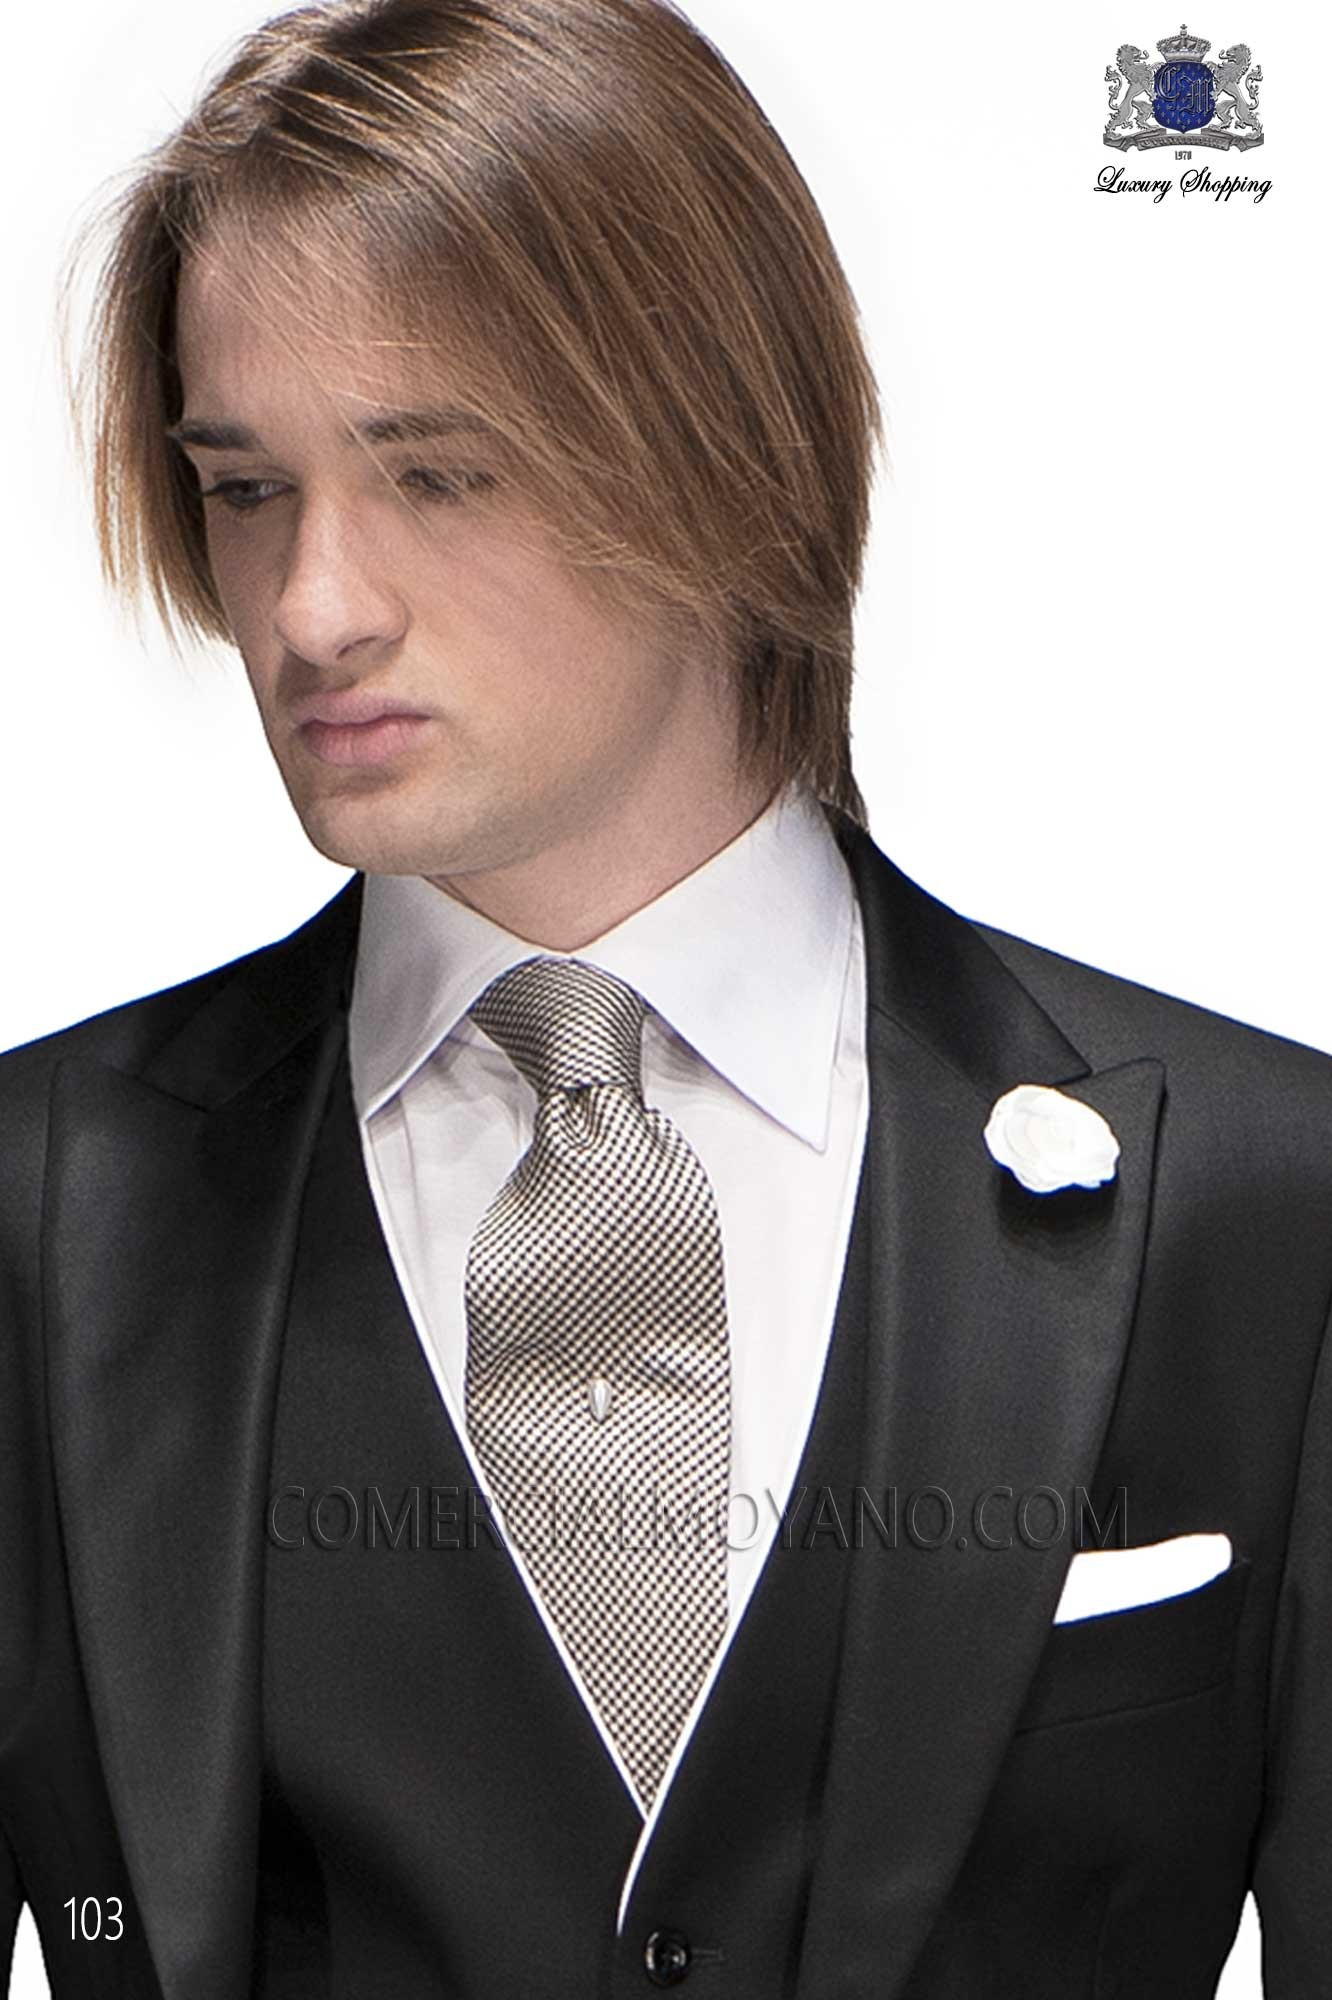 Italian gentleman black men wedding suit, model: 103 Ottavio Nuccio Gala Gentleman Collection